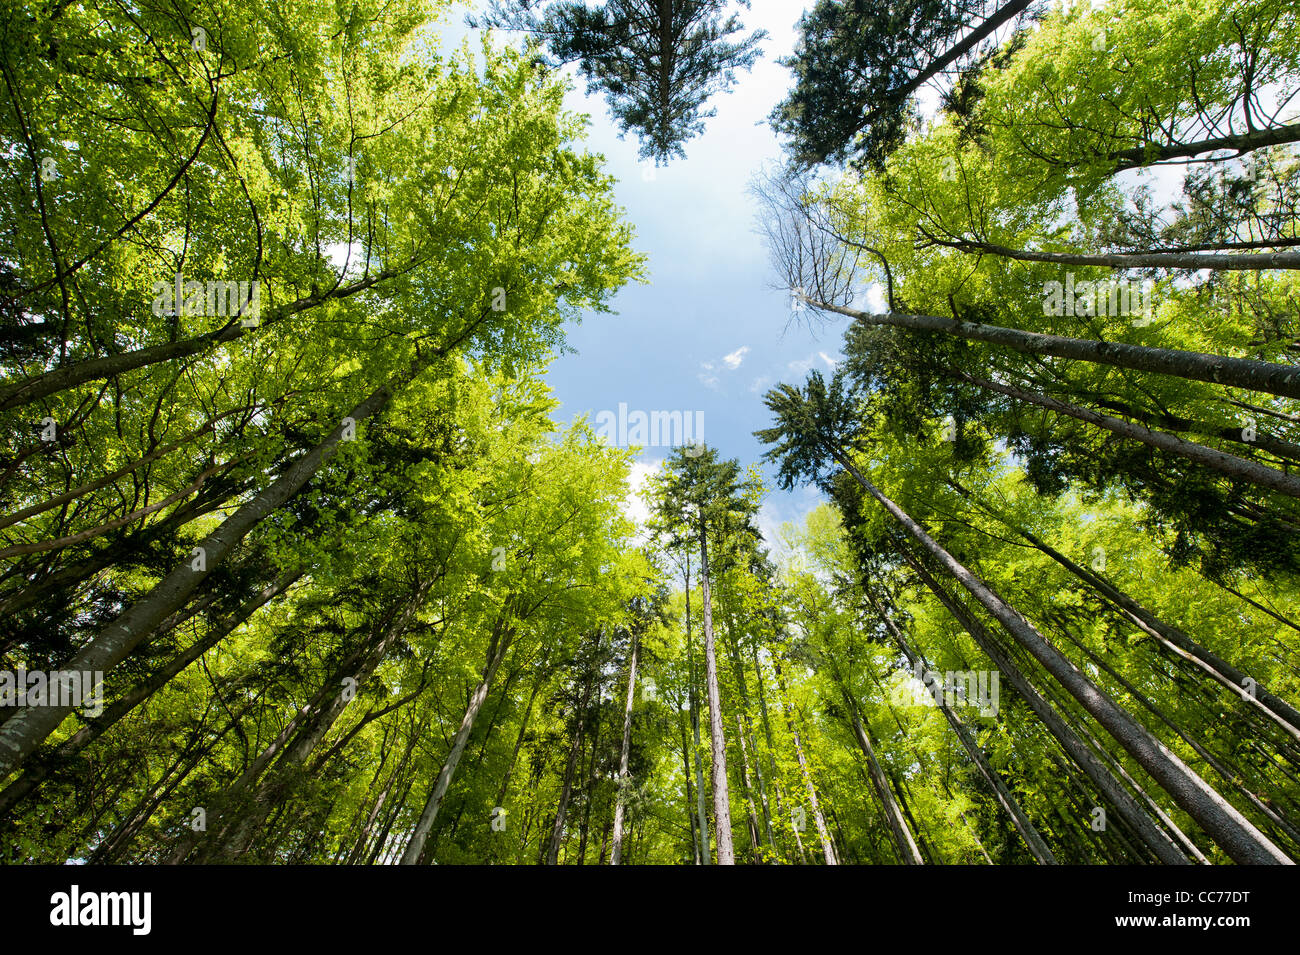 Wide angle view of a colorful spring forest - Stock Image